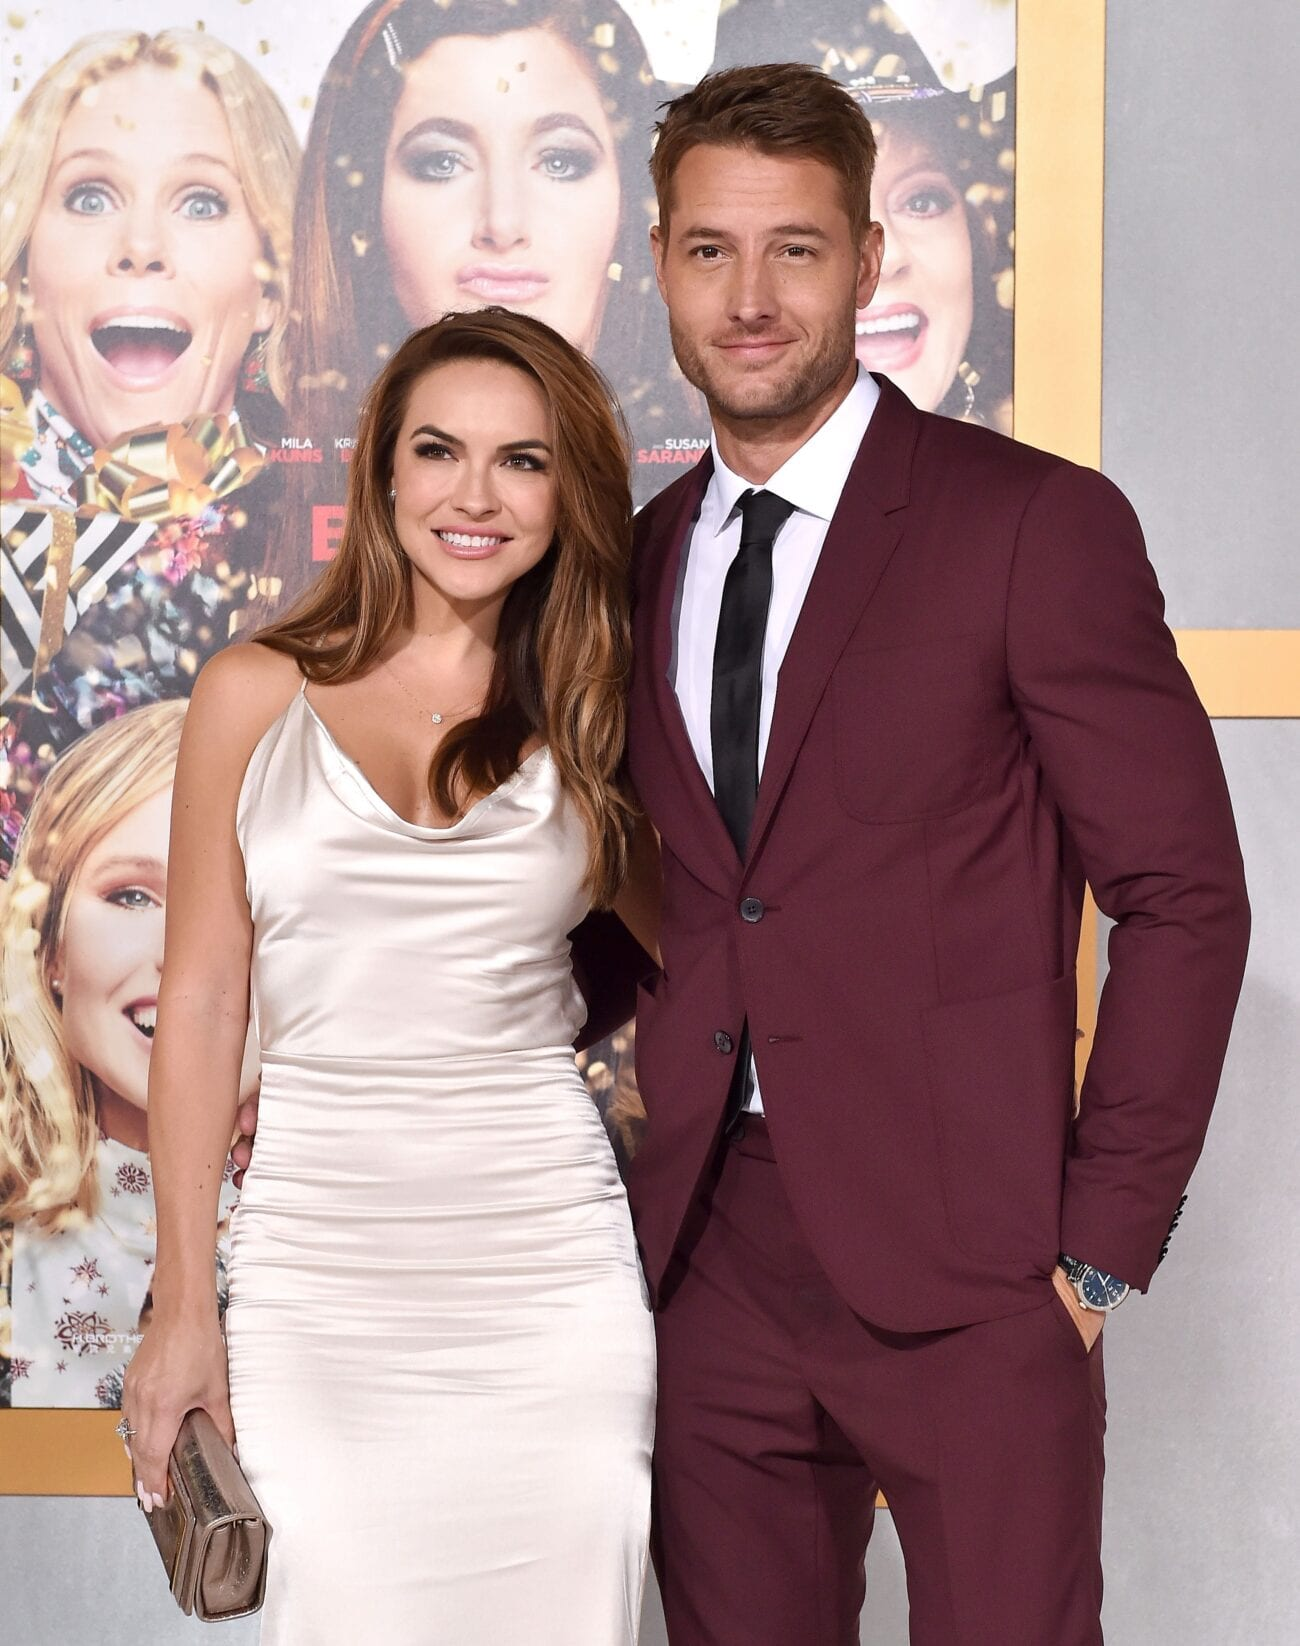 Justin Hartley and his wife, 'Selling Sunset' star Chrishell Stause called it quits back in 2019, but why? And why is everyone caring about it now?